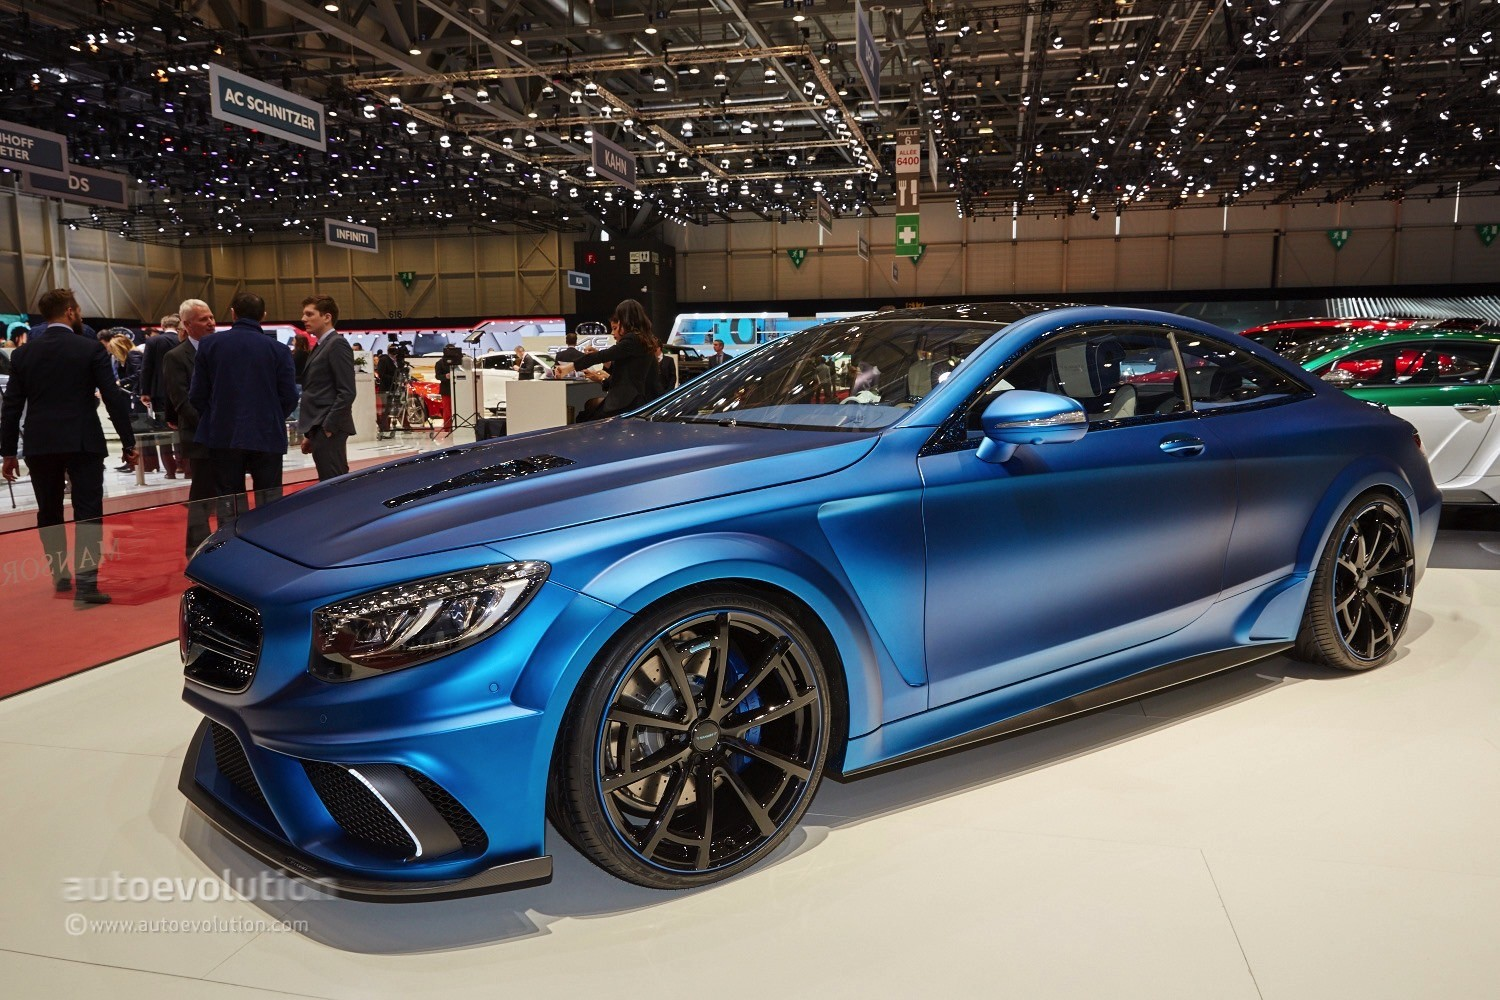 Blue Is The New Black For The S63 Amg Coupe Diamond